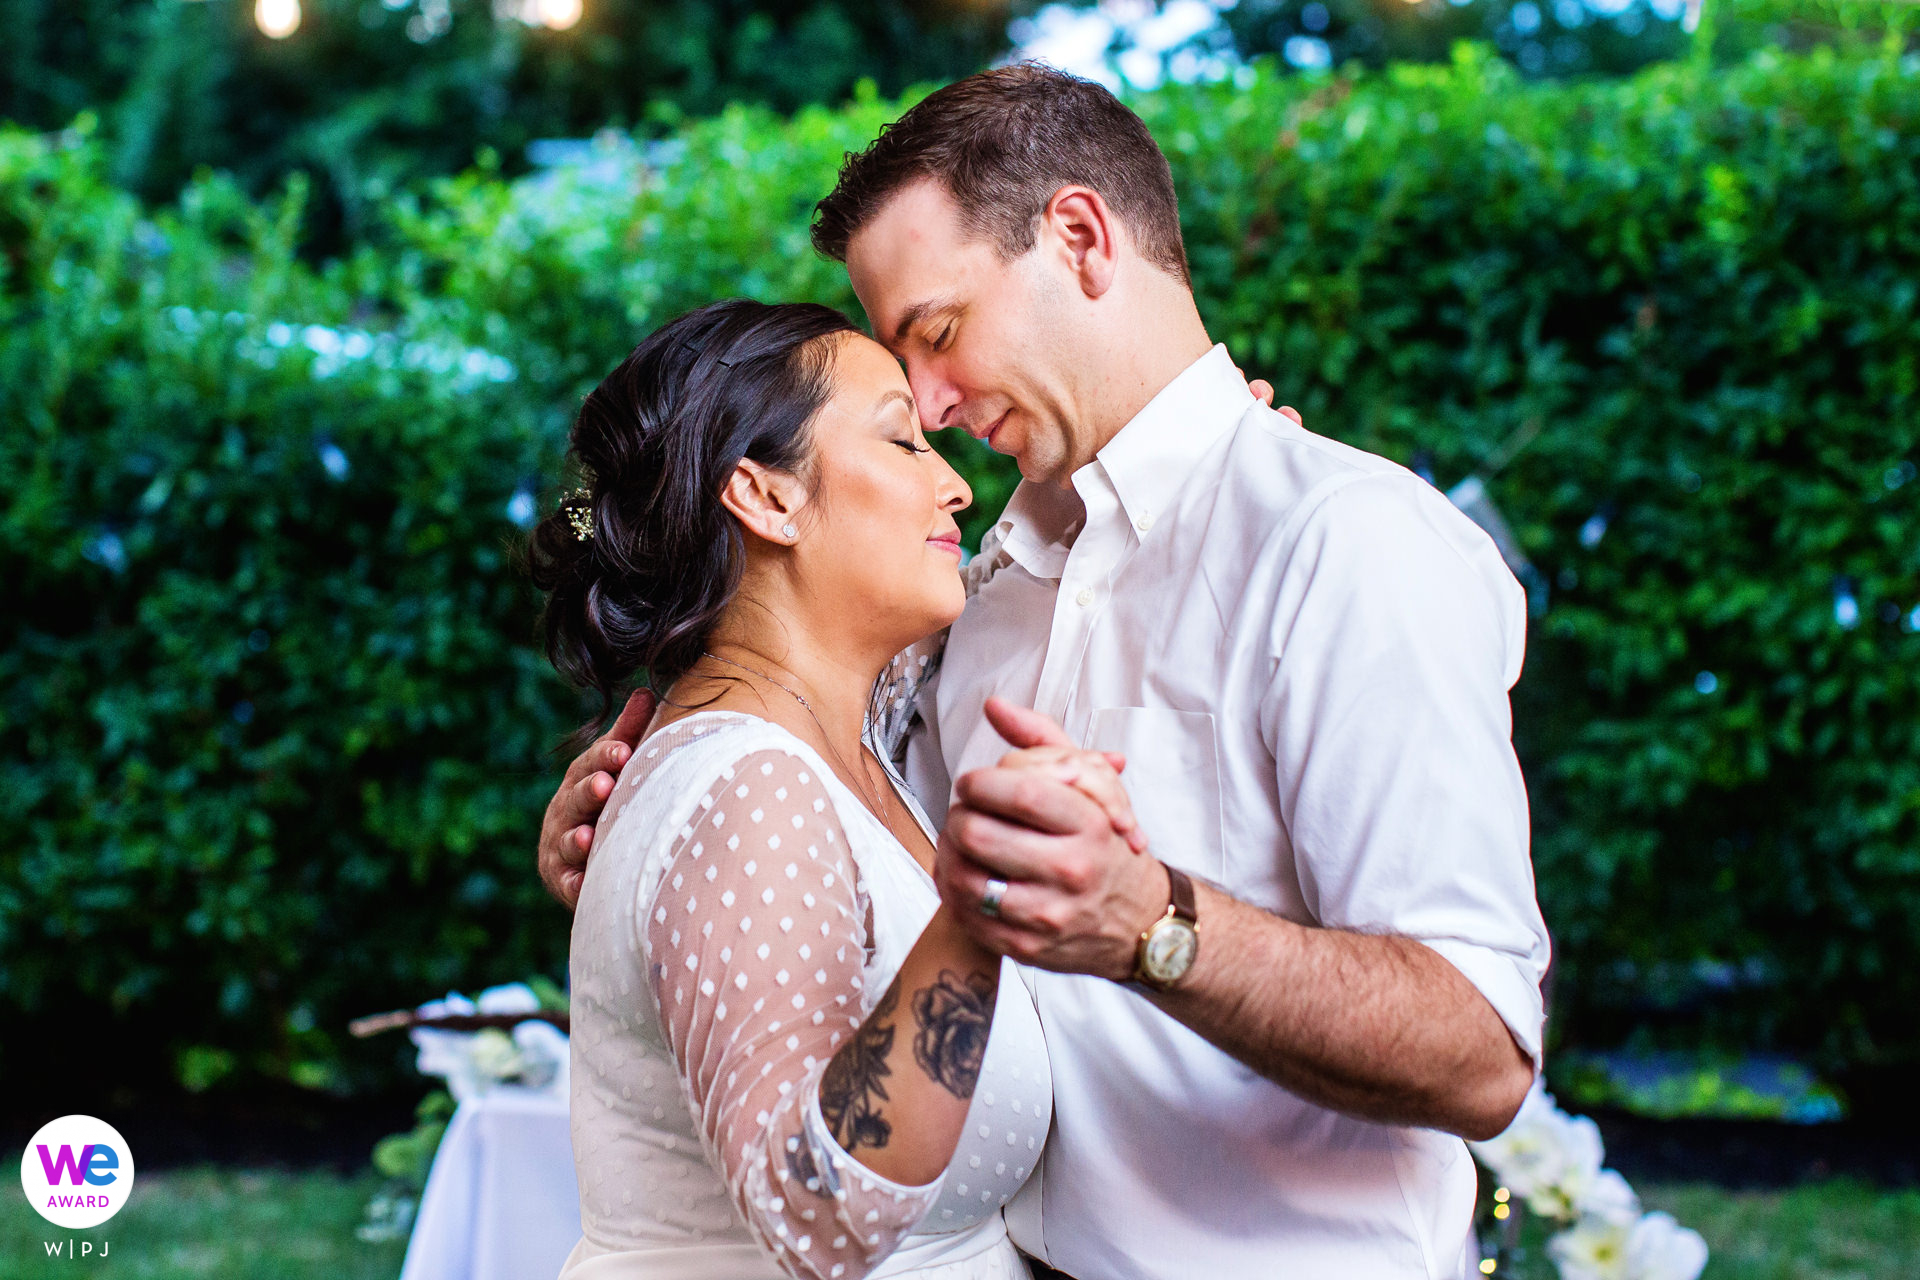 Weddings and Elopements Photos for NJ | The bride and groom enjoy a quiet moment dancing during their backyard wedding reception